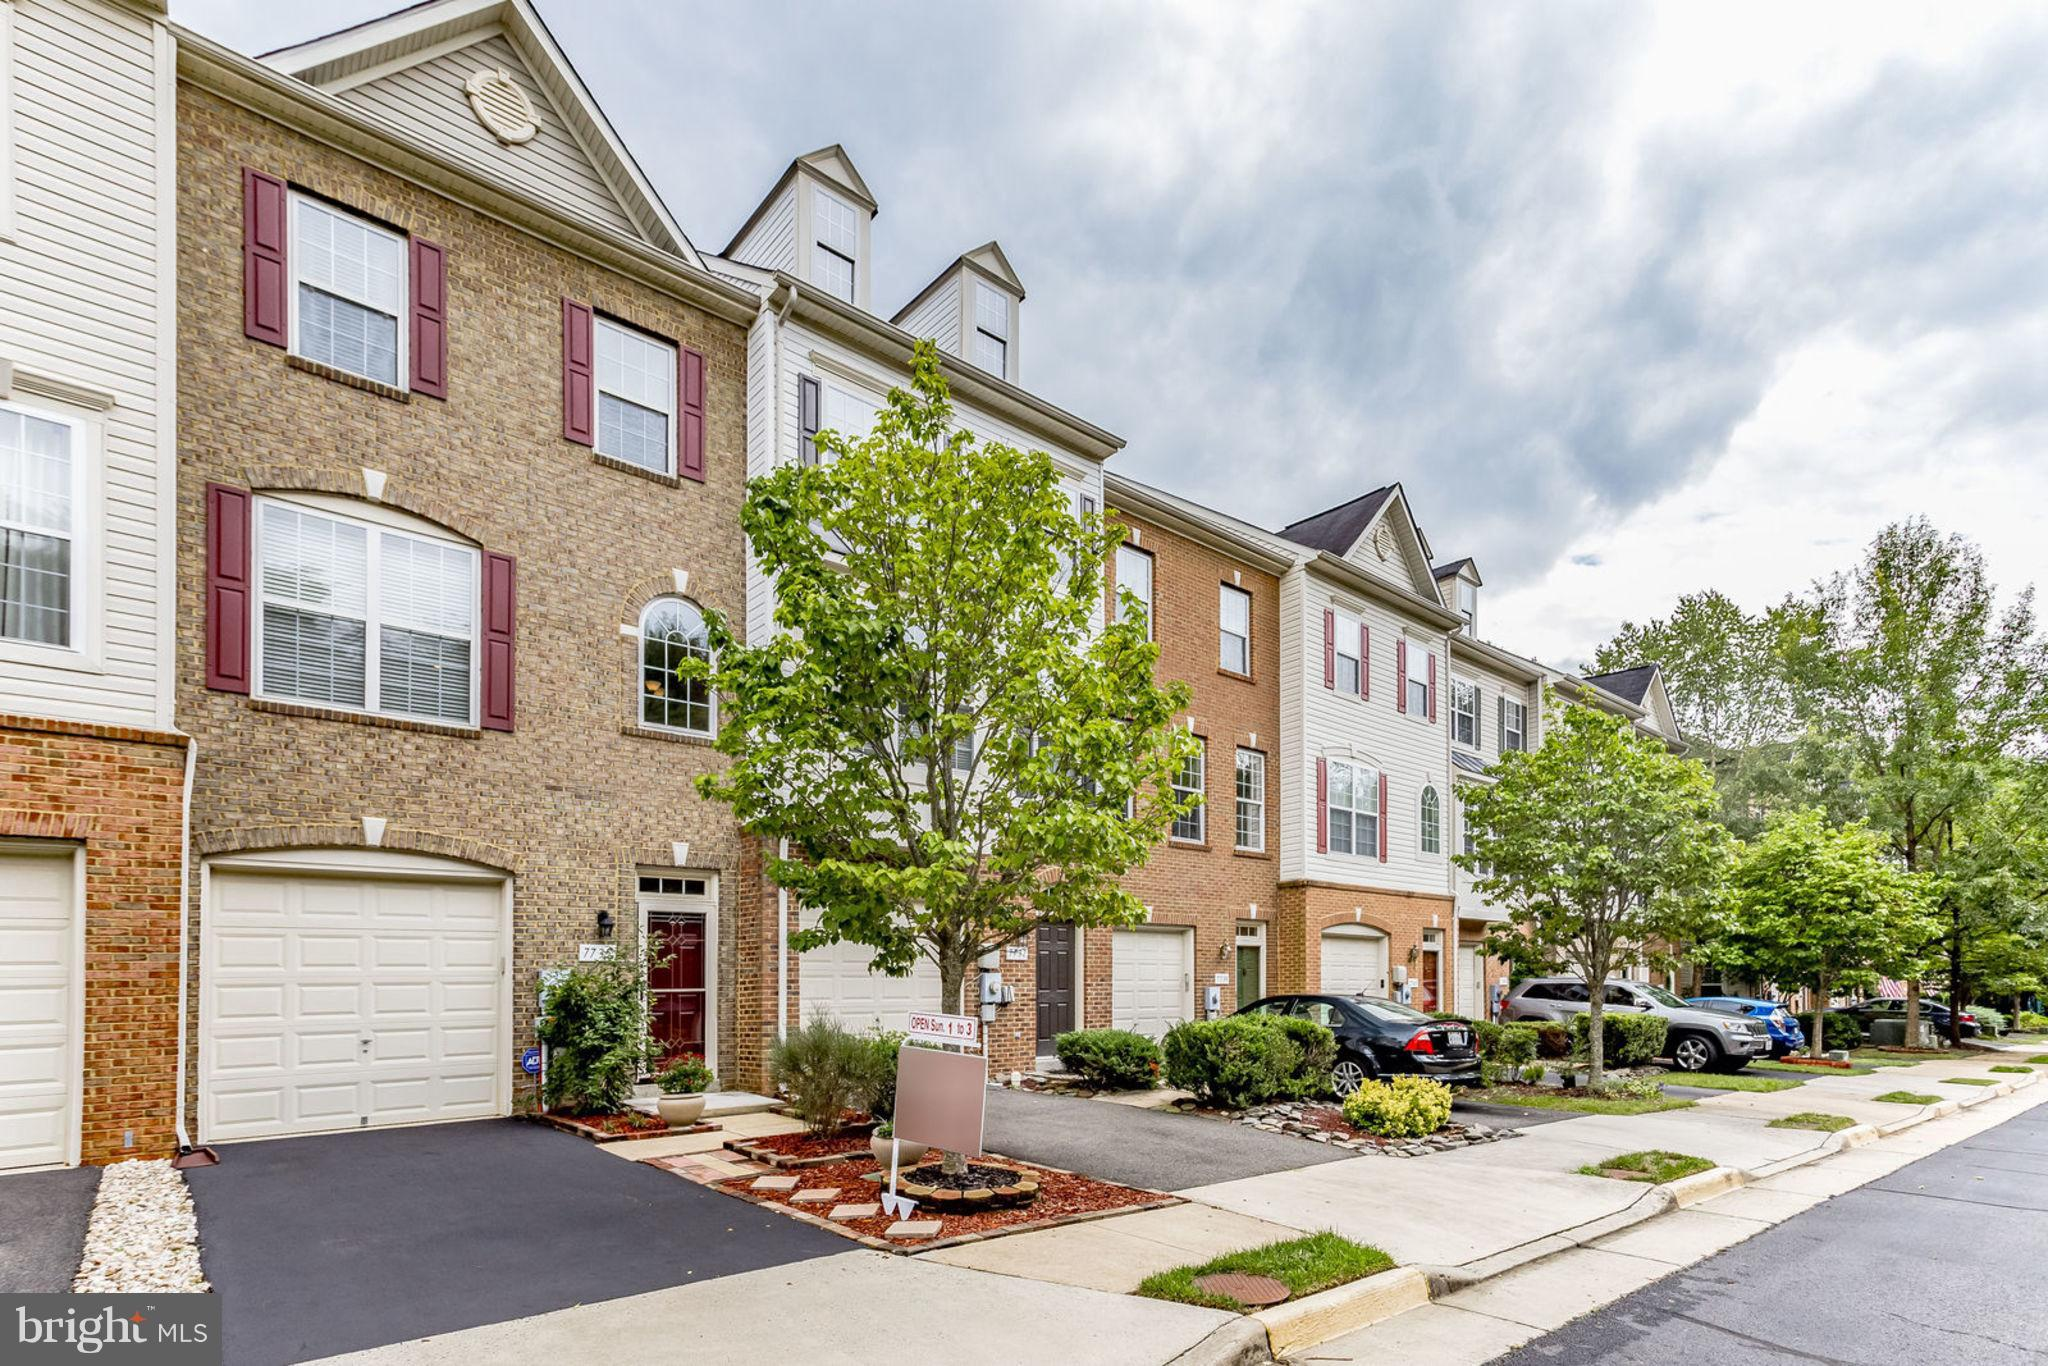 Wonderfully updated 4 br, 3.5 ba, garage town home surrounded by amenities. Deck backs to trees; kitchen has tiled flooring & silestone counters; family room has splendid hardwoods, & MBA has spa-like shower. Borders Huntley Meadows Park. Metro is 2.9 miles; Bus